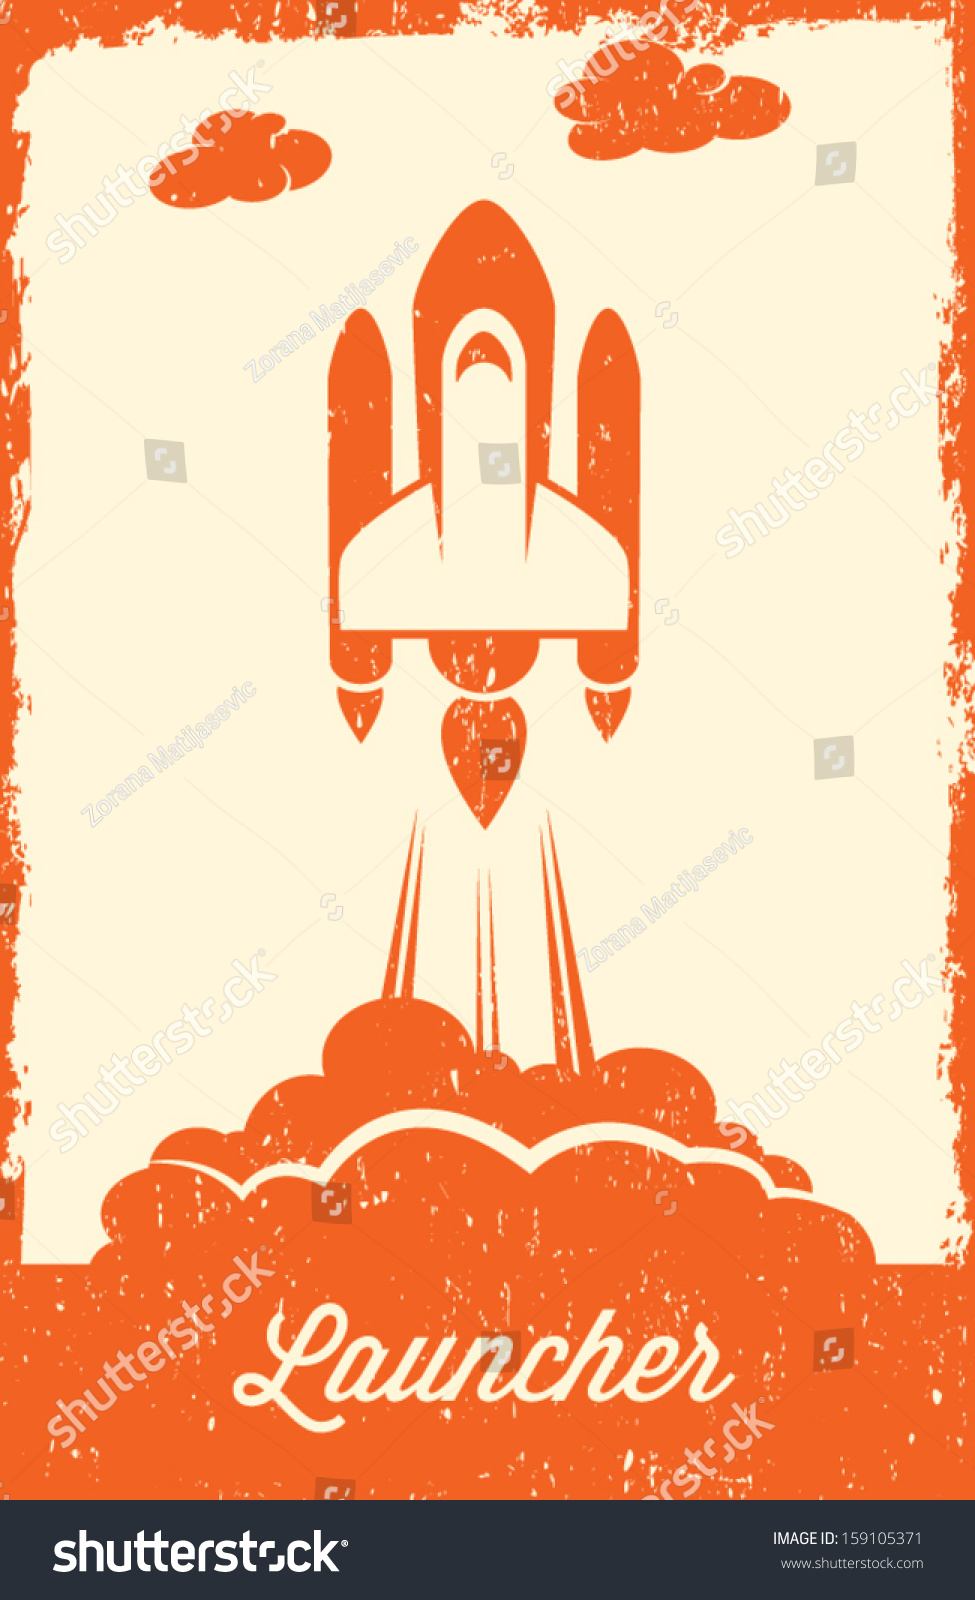 Space Shuttle Launch Retro Style Stock Vector 159105371 ...